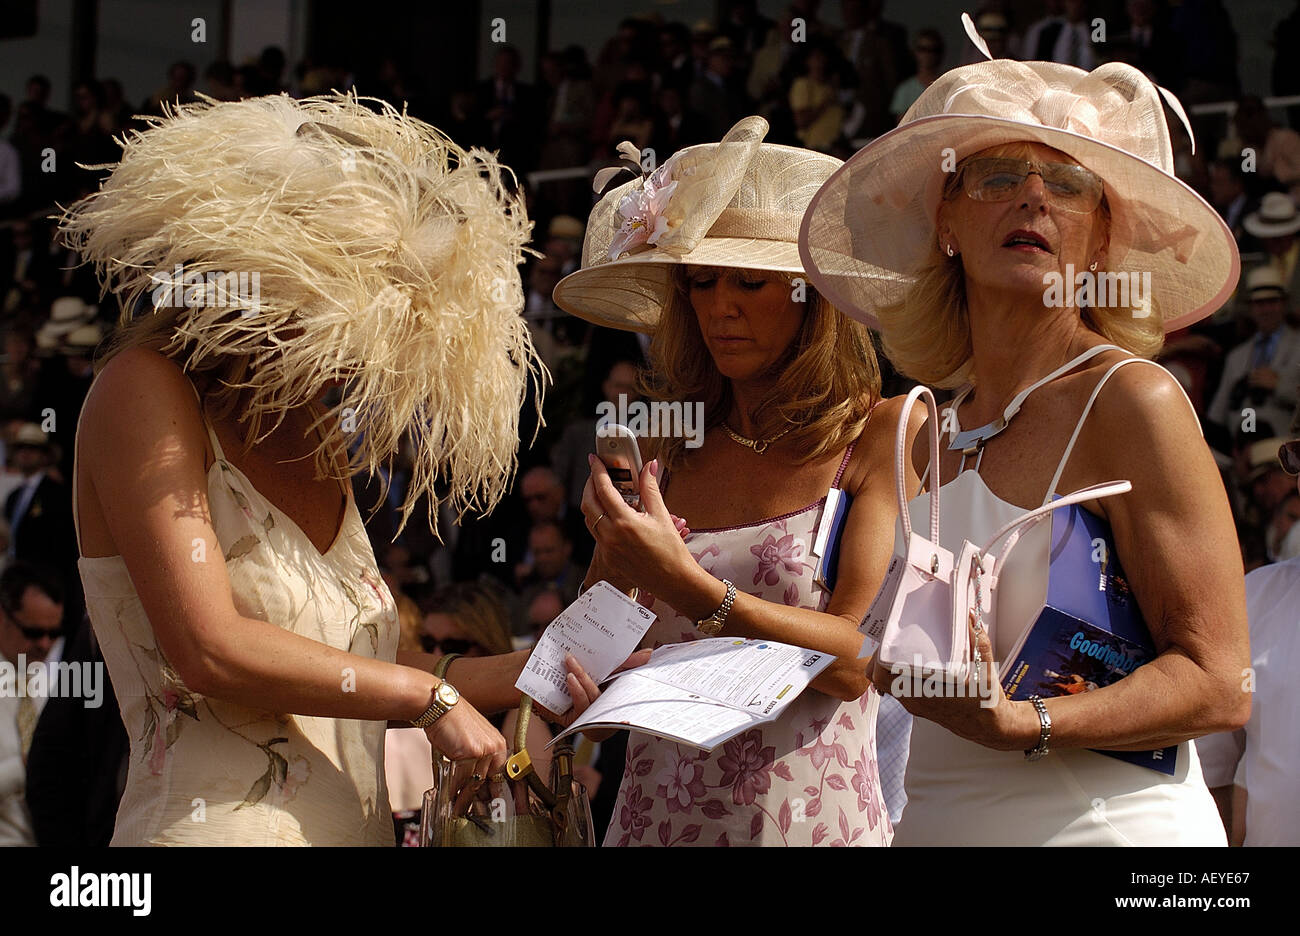 Racegoers at Glorious Goodwood in West Sussex England Picture by Andrew Hasson July 30th 2004 - Stock Image